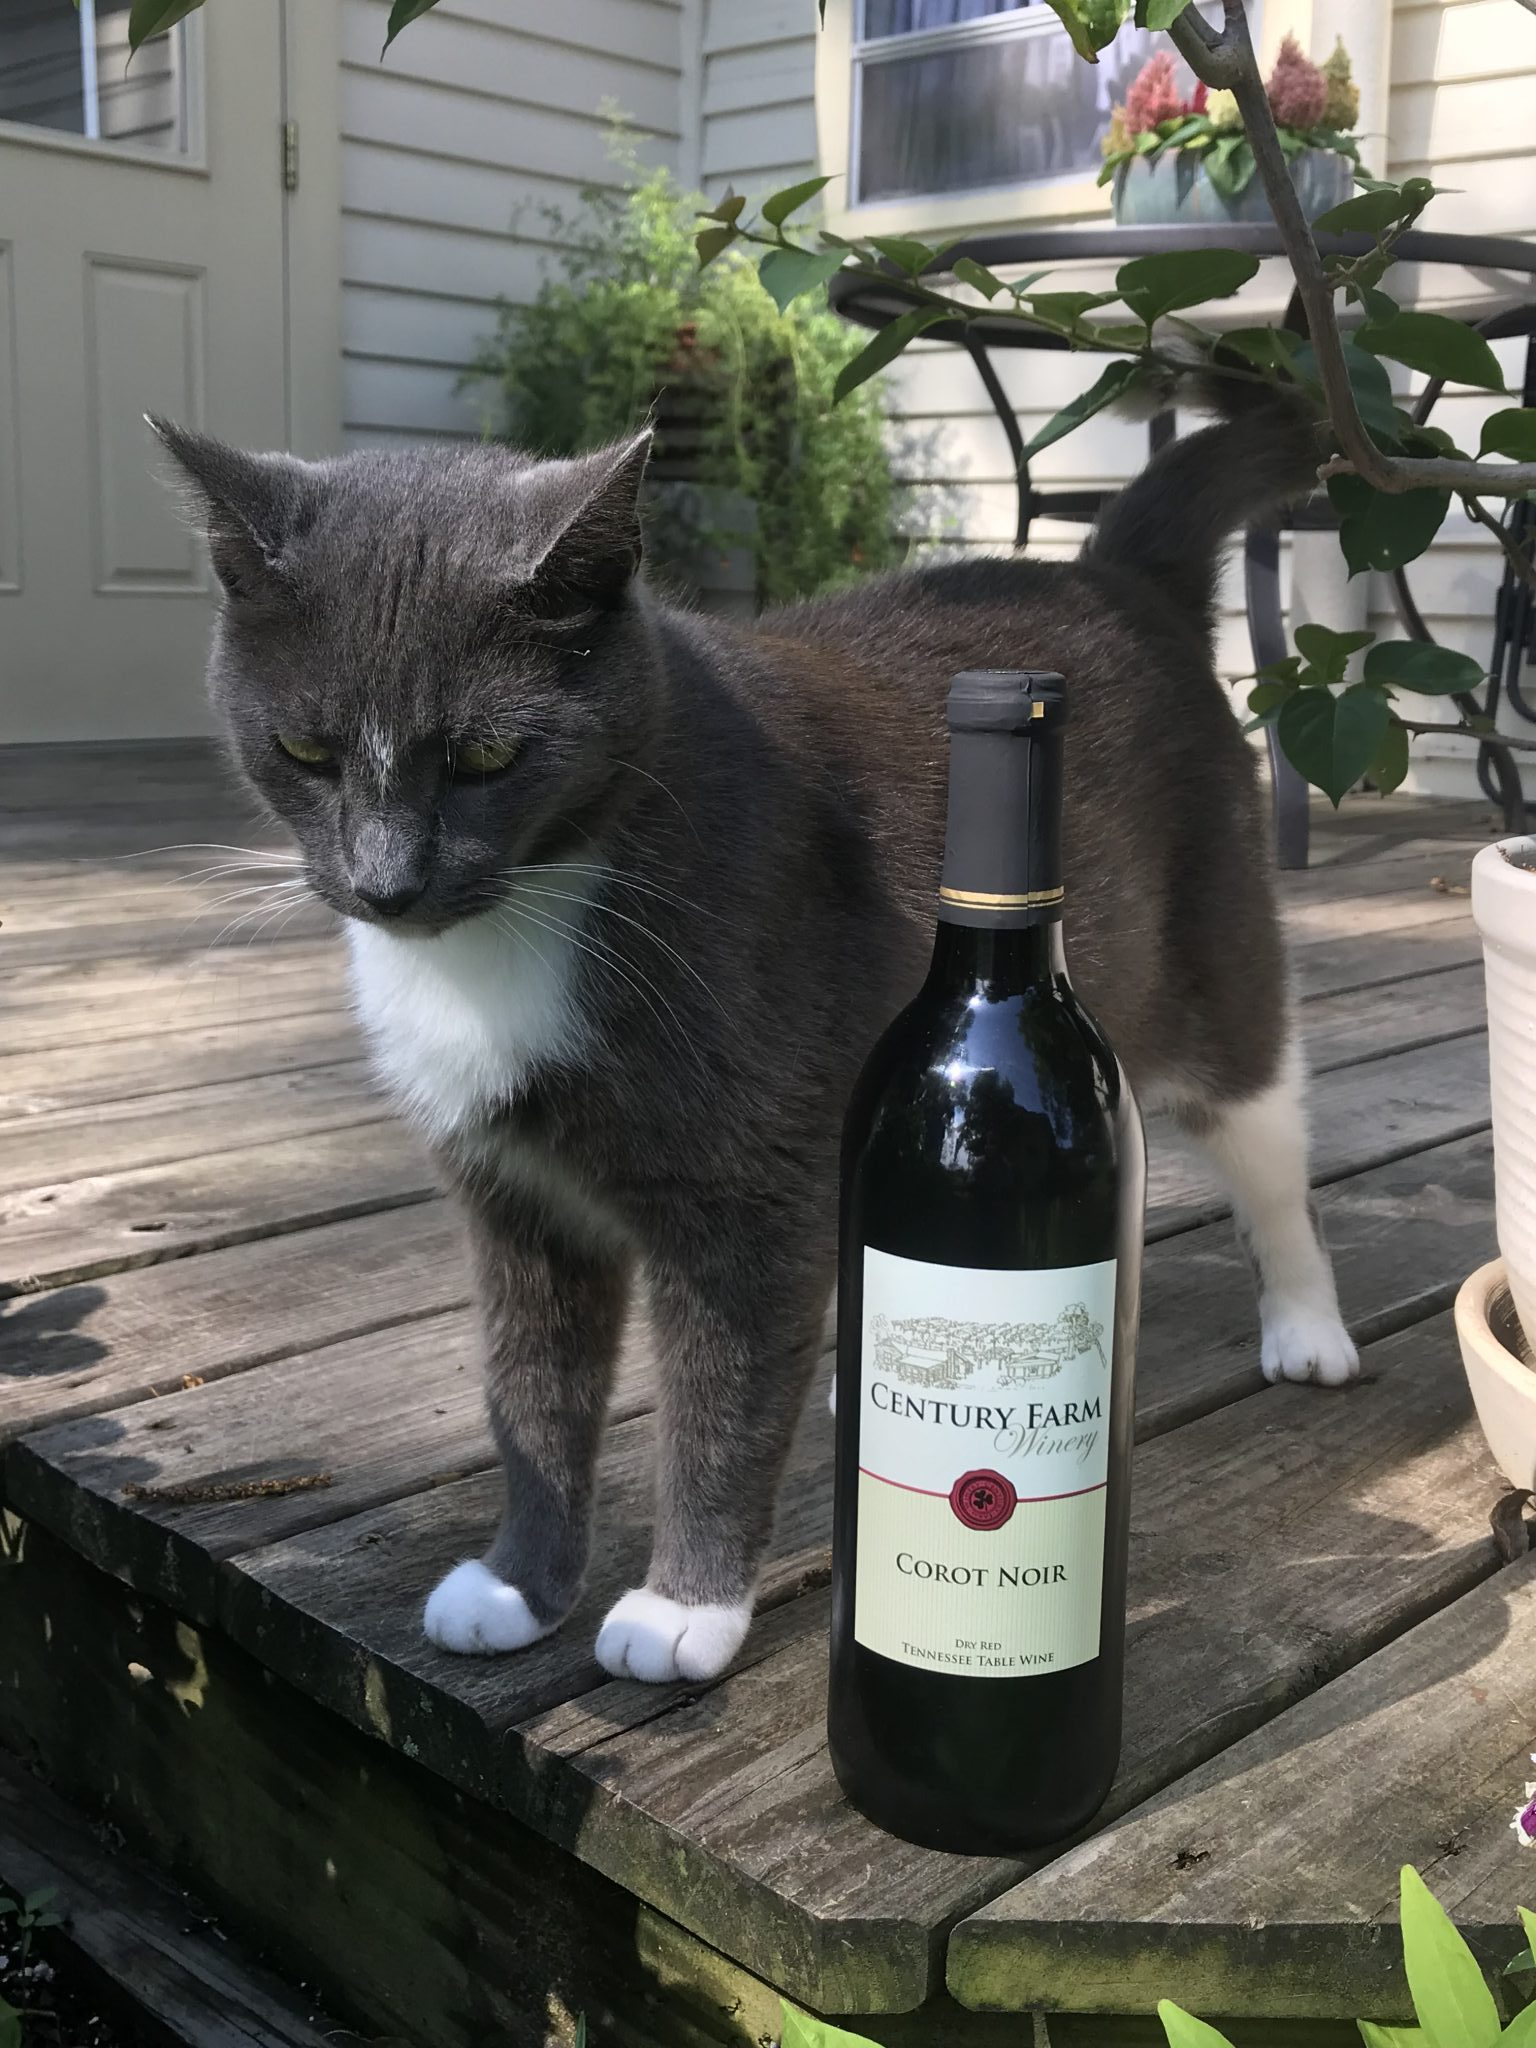 Corot Noir – July 2018 Wine of the Month